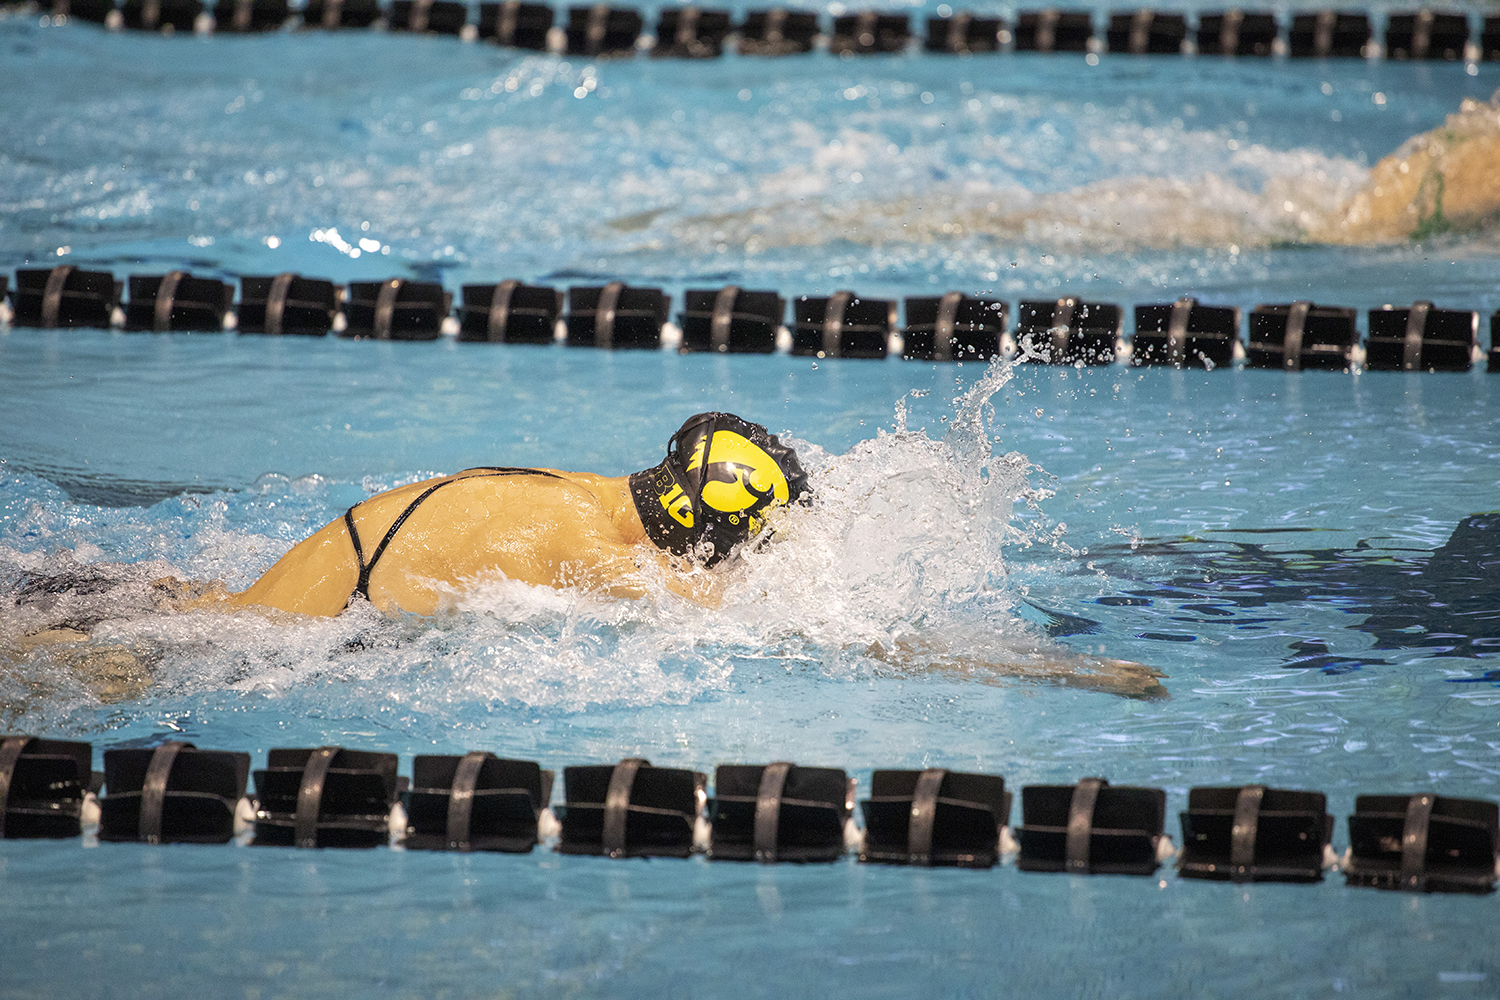 A Hawkeye swims breaststroke at the swim meet on Friday, October 4. The Iowa men won over Michigan State, 180 to 112. The Iowa women won over Michigan State 183 to 113. The women also won over Northern Iowa. 183 to 113. Michigan State won over Northern Iowa 180 to 120.